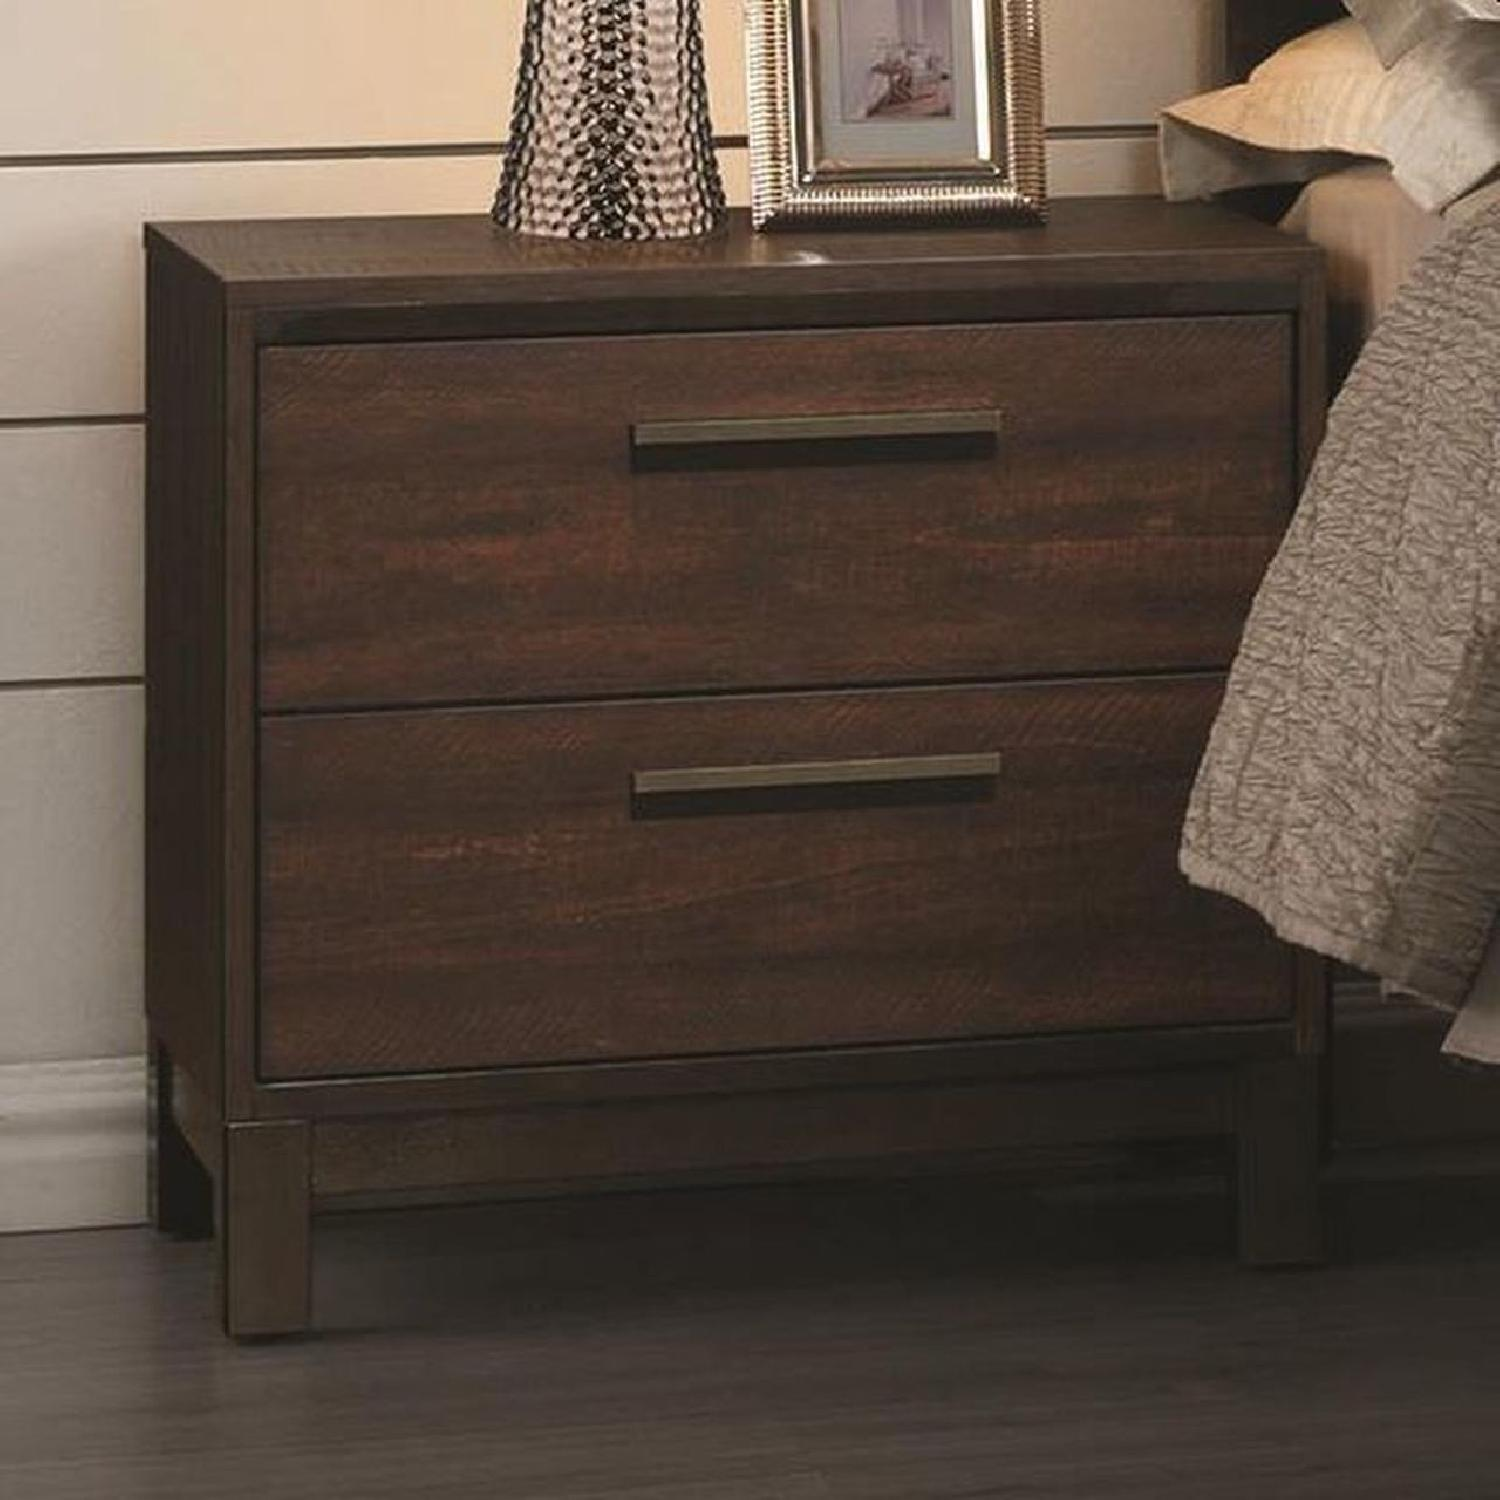 Modern 2-Drawer Nightstand in Rustic Tobacco Finish - image-1